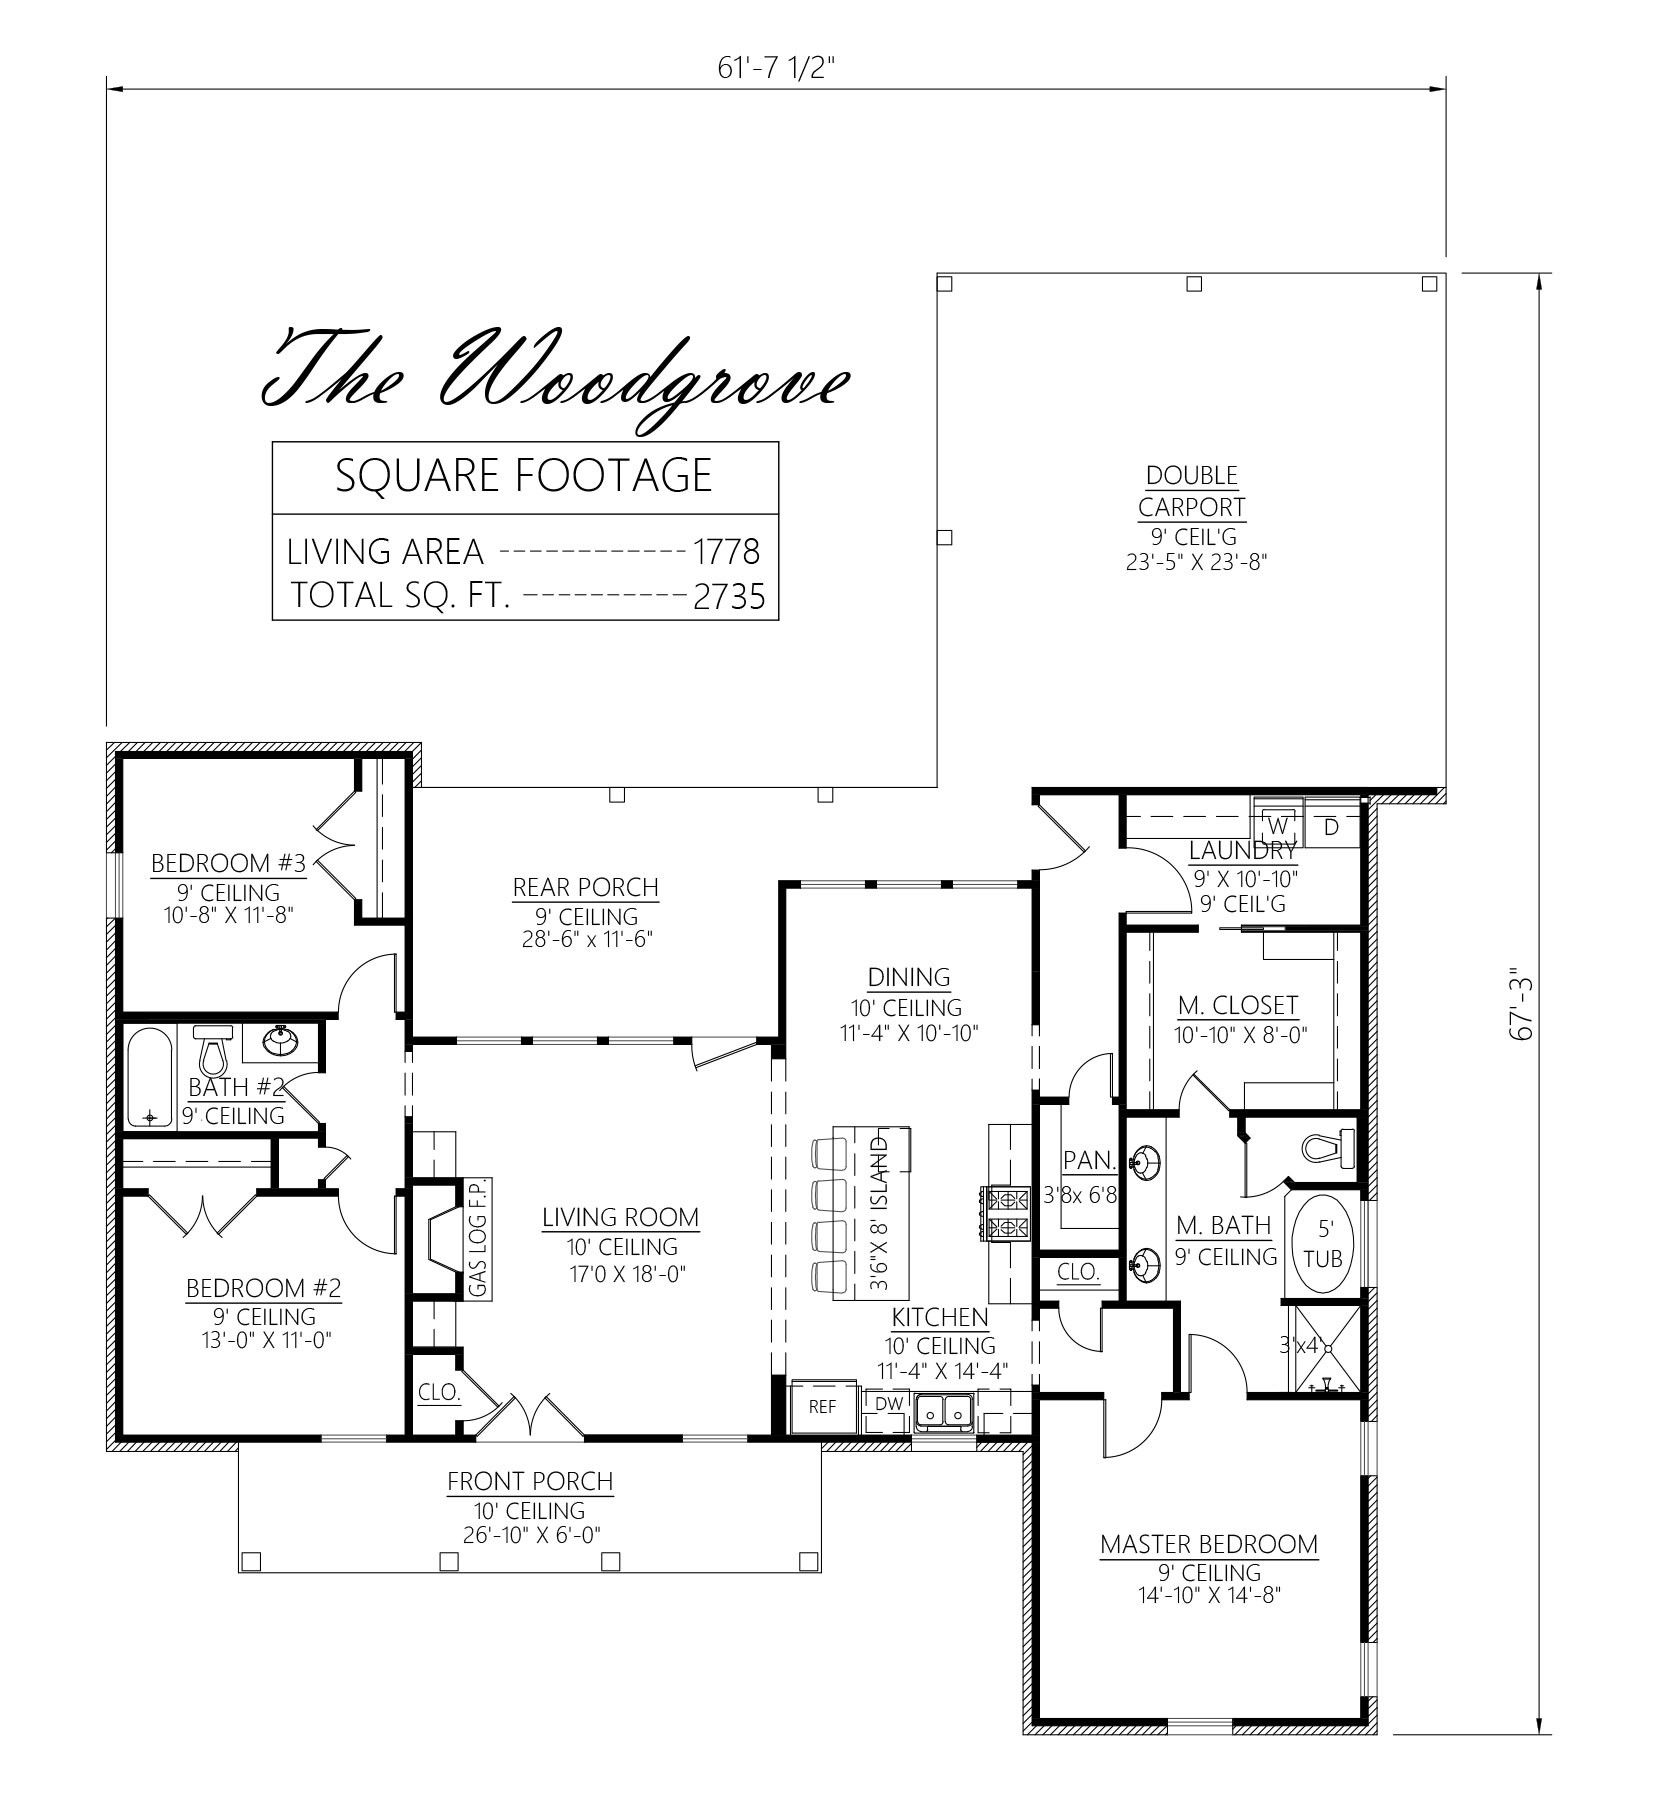 Craftsman Style House Plans 1905 Square Foot Home 1 Story 3 Bedroom And 2 Bath 2 Ga Home Design Floor Plans House Floor Plans Craftsman Style House Plans